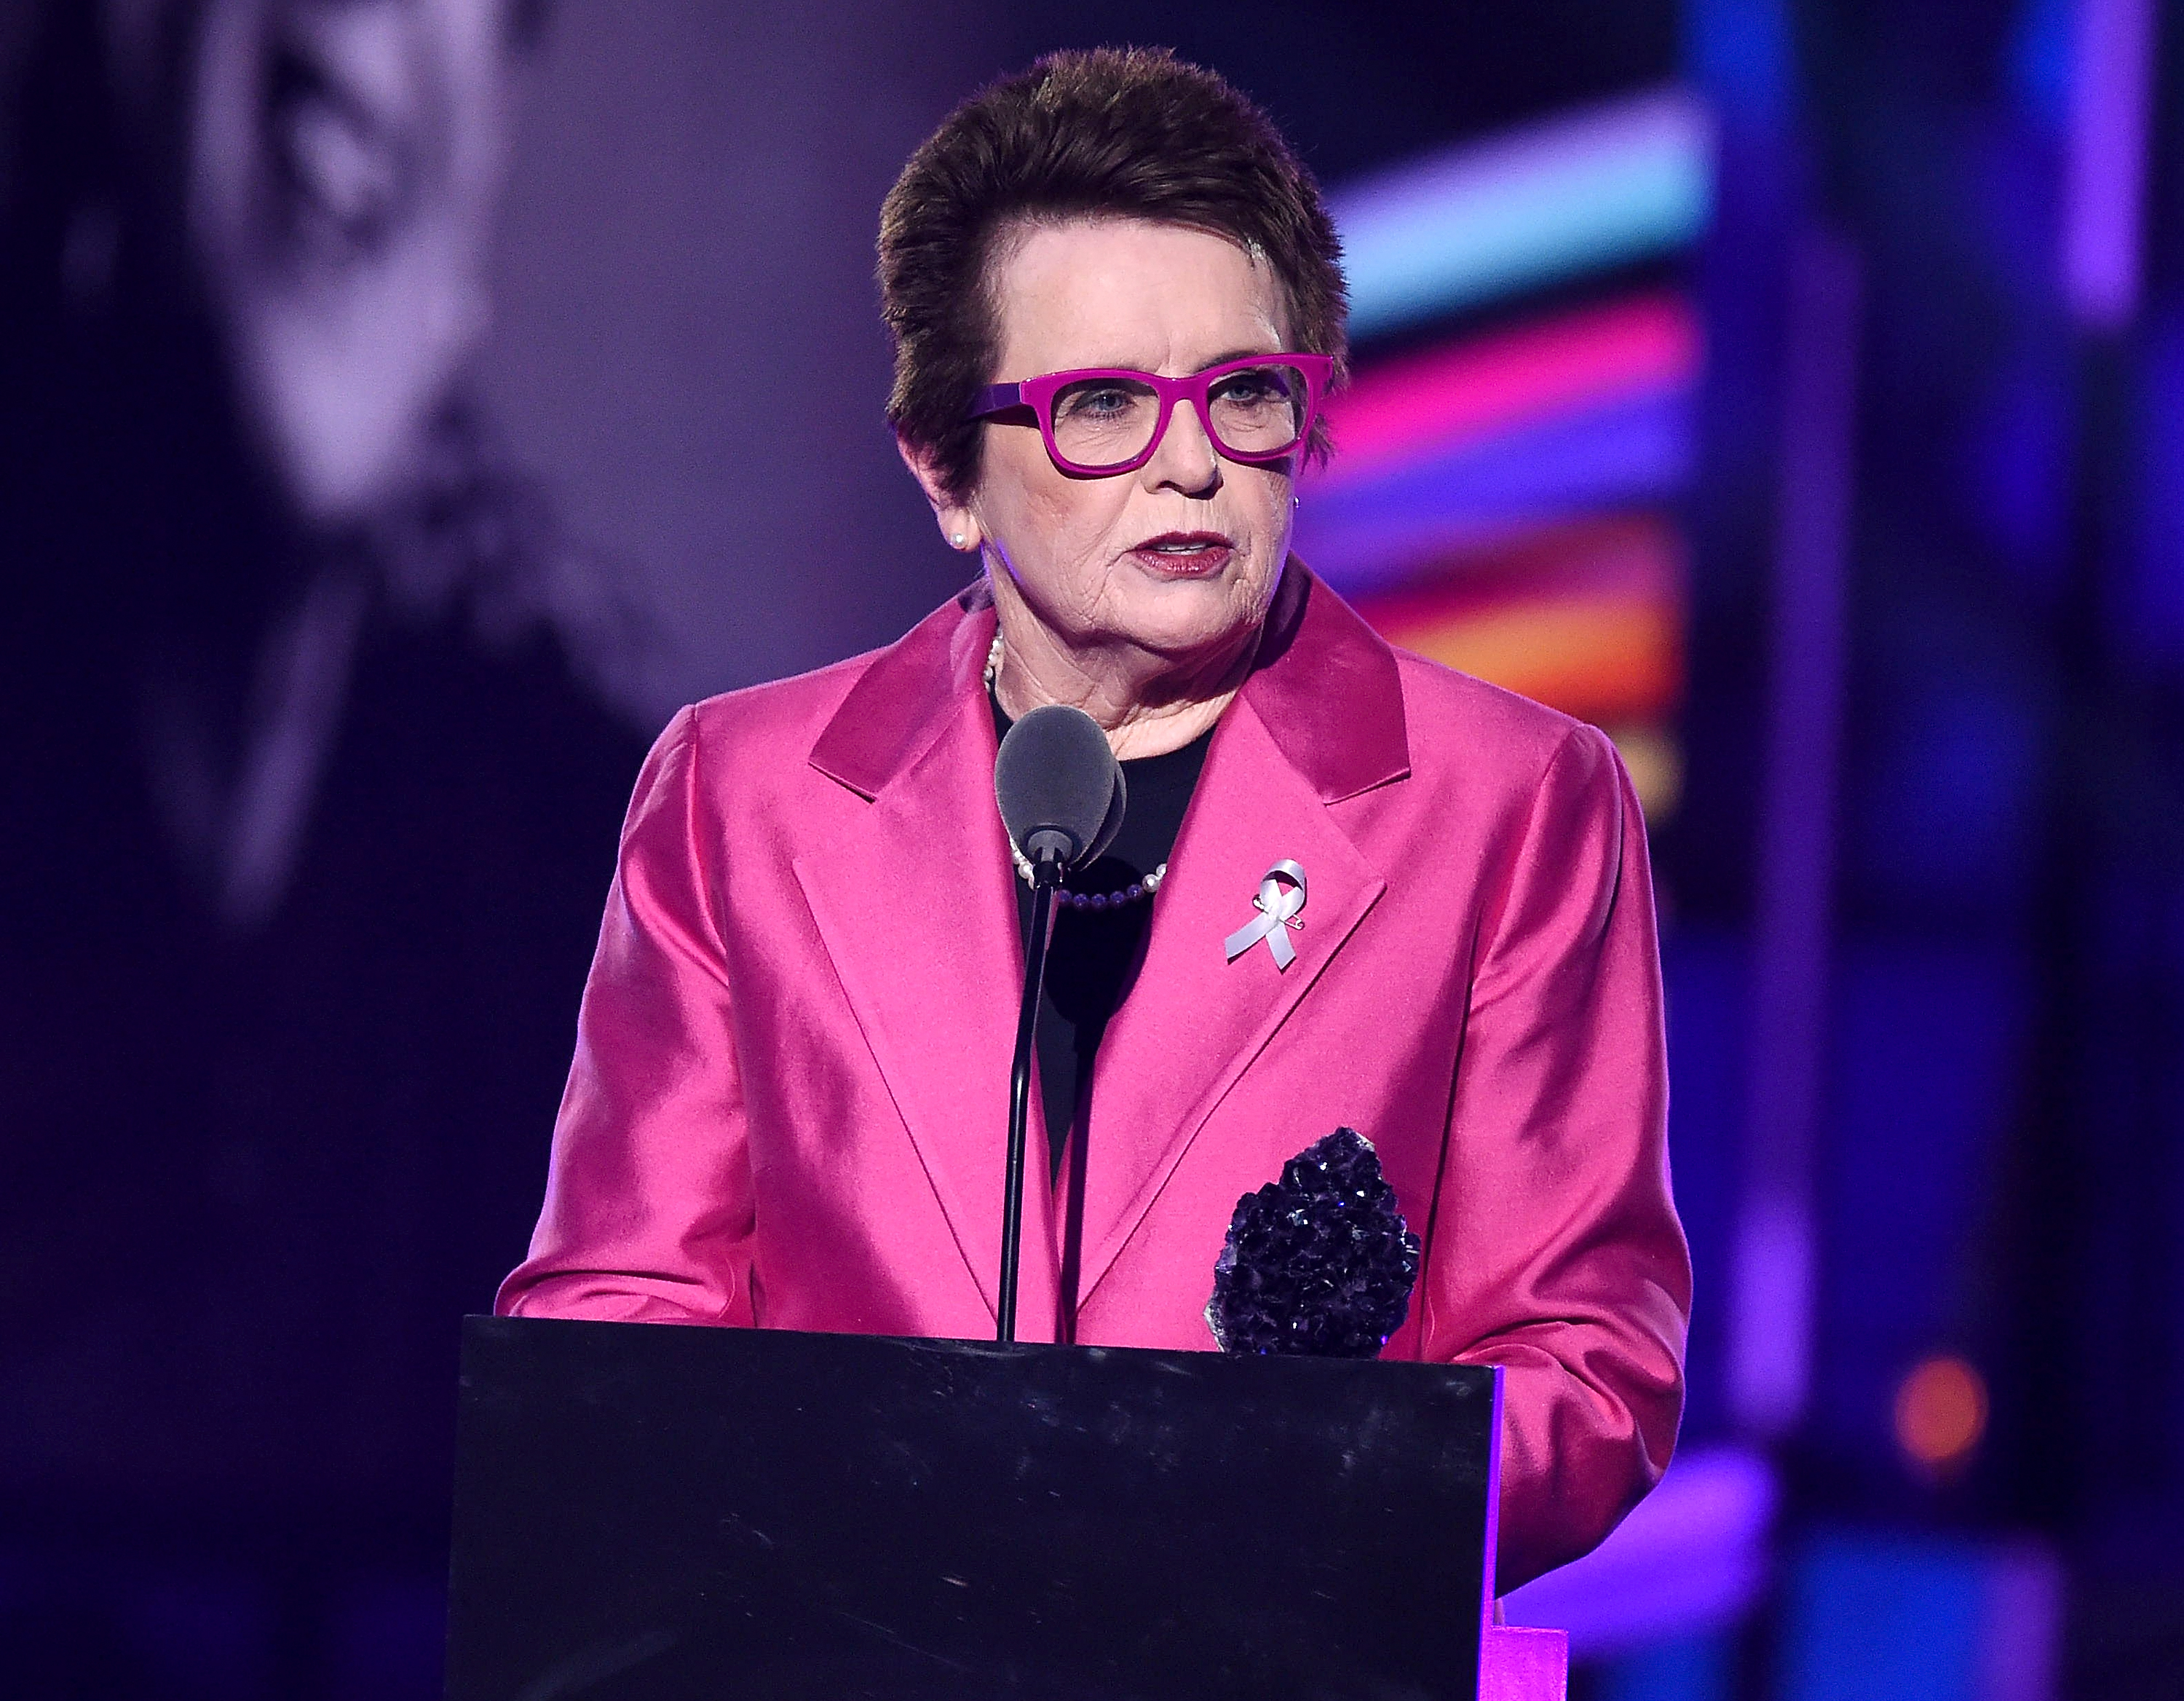 Honoree Billie Jean King speaking at the 2016 Logo's Trailblazer Honors